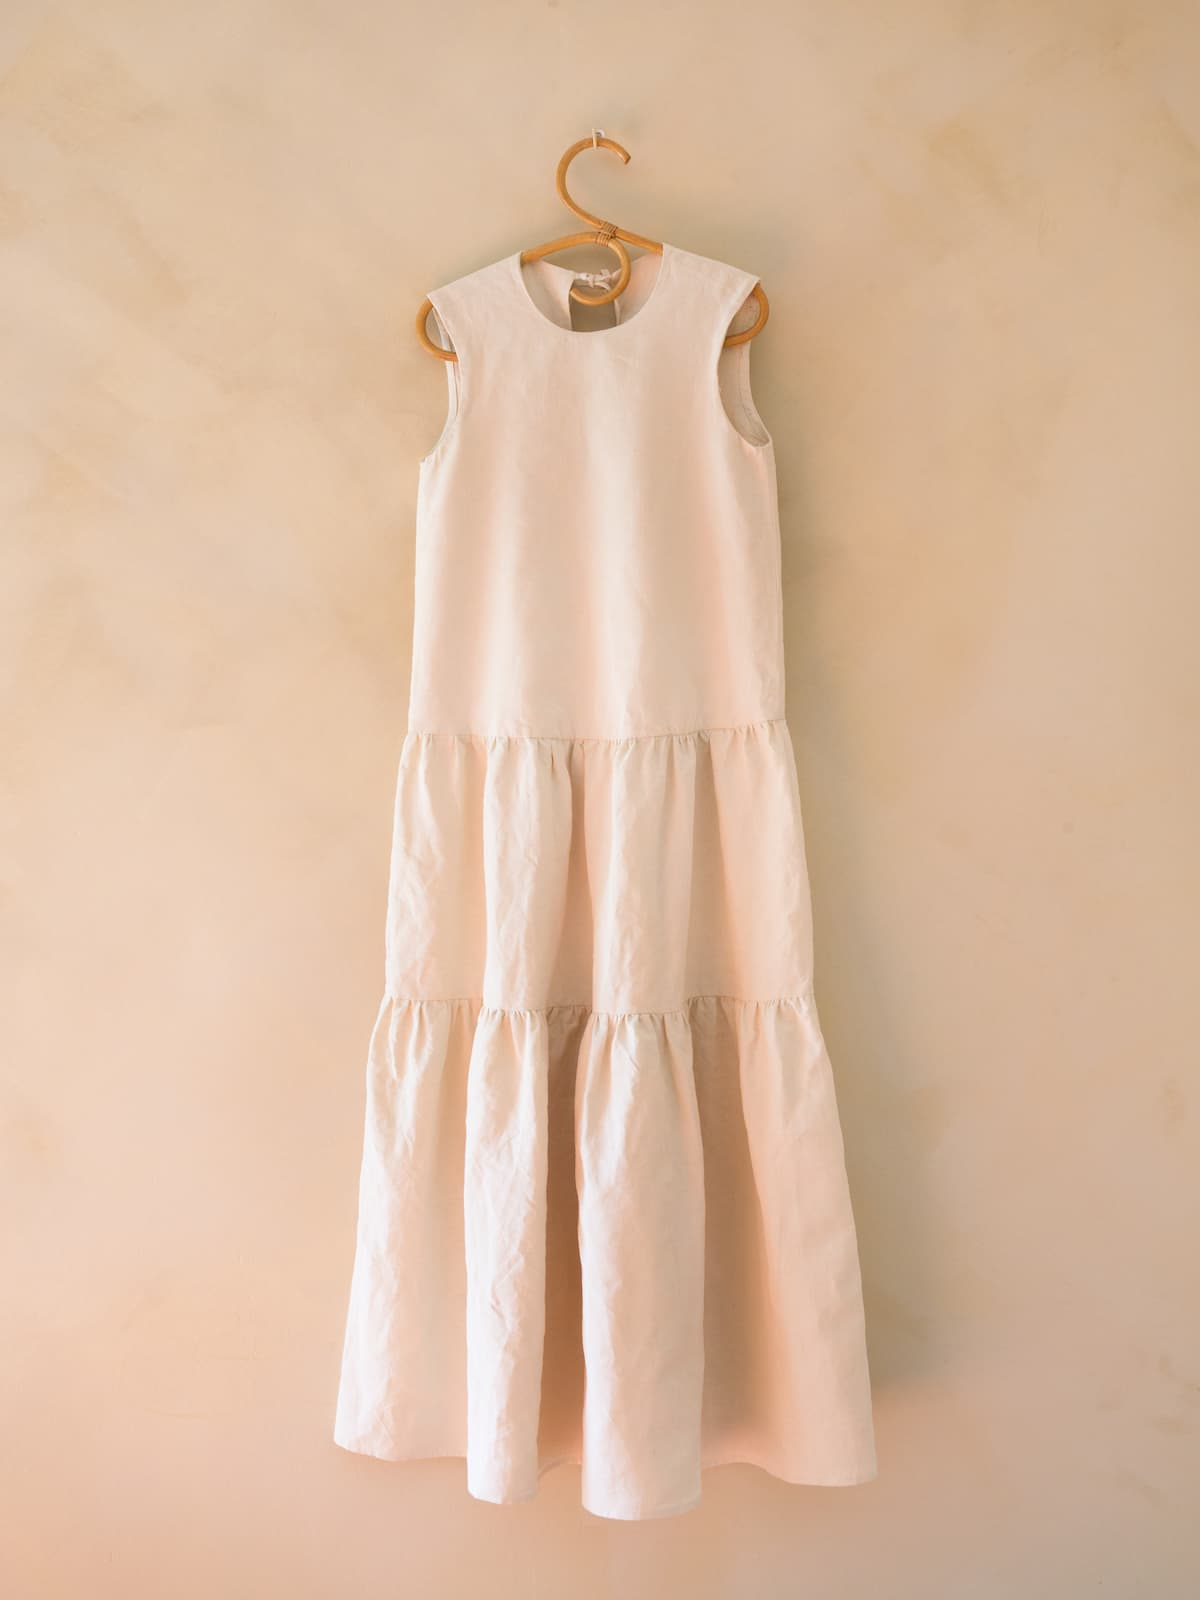 modular antique linen dress